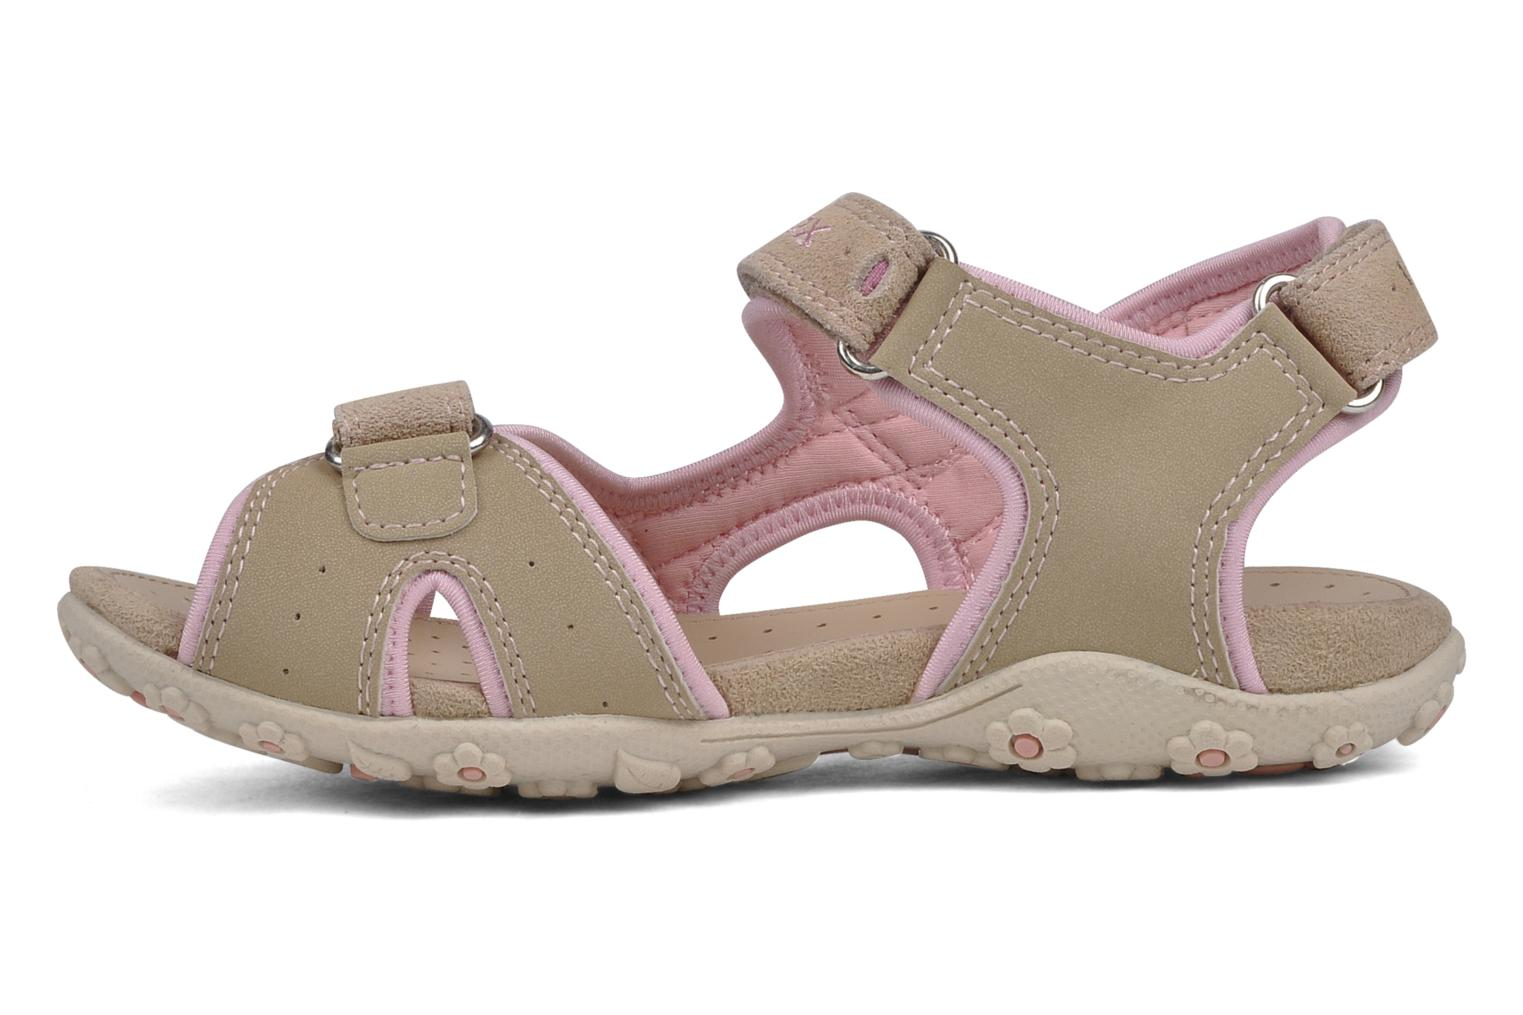 J s.roxanne r Beige light pink